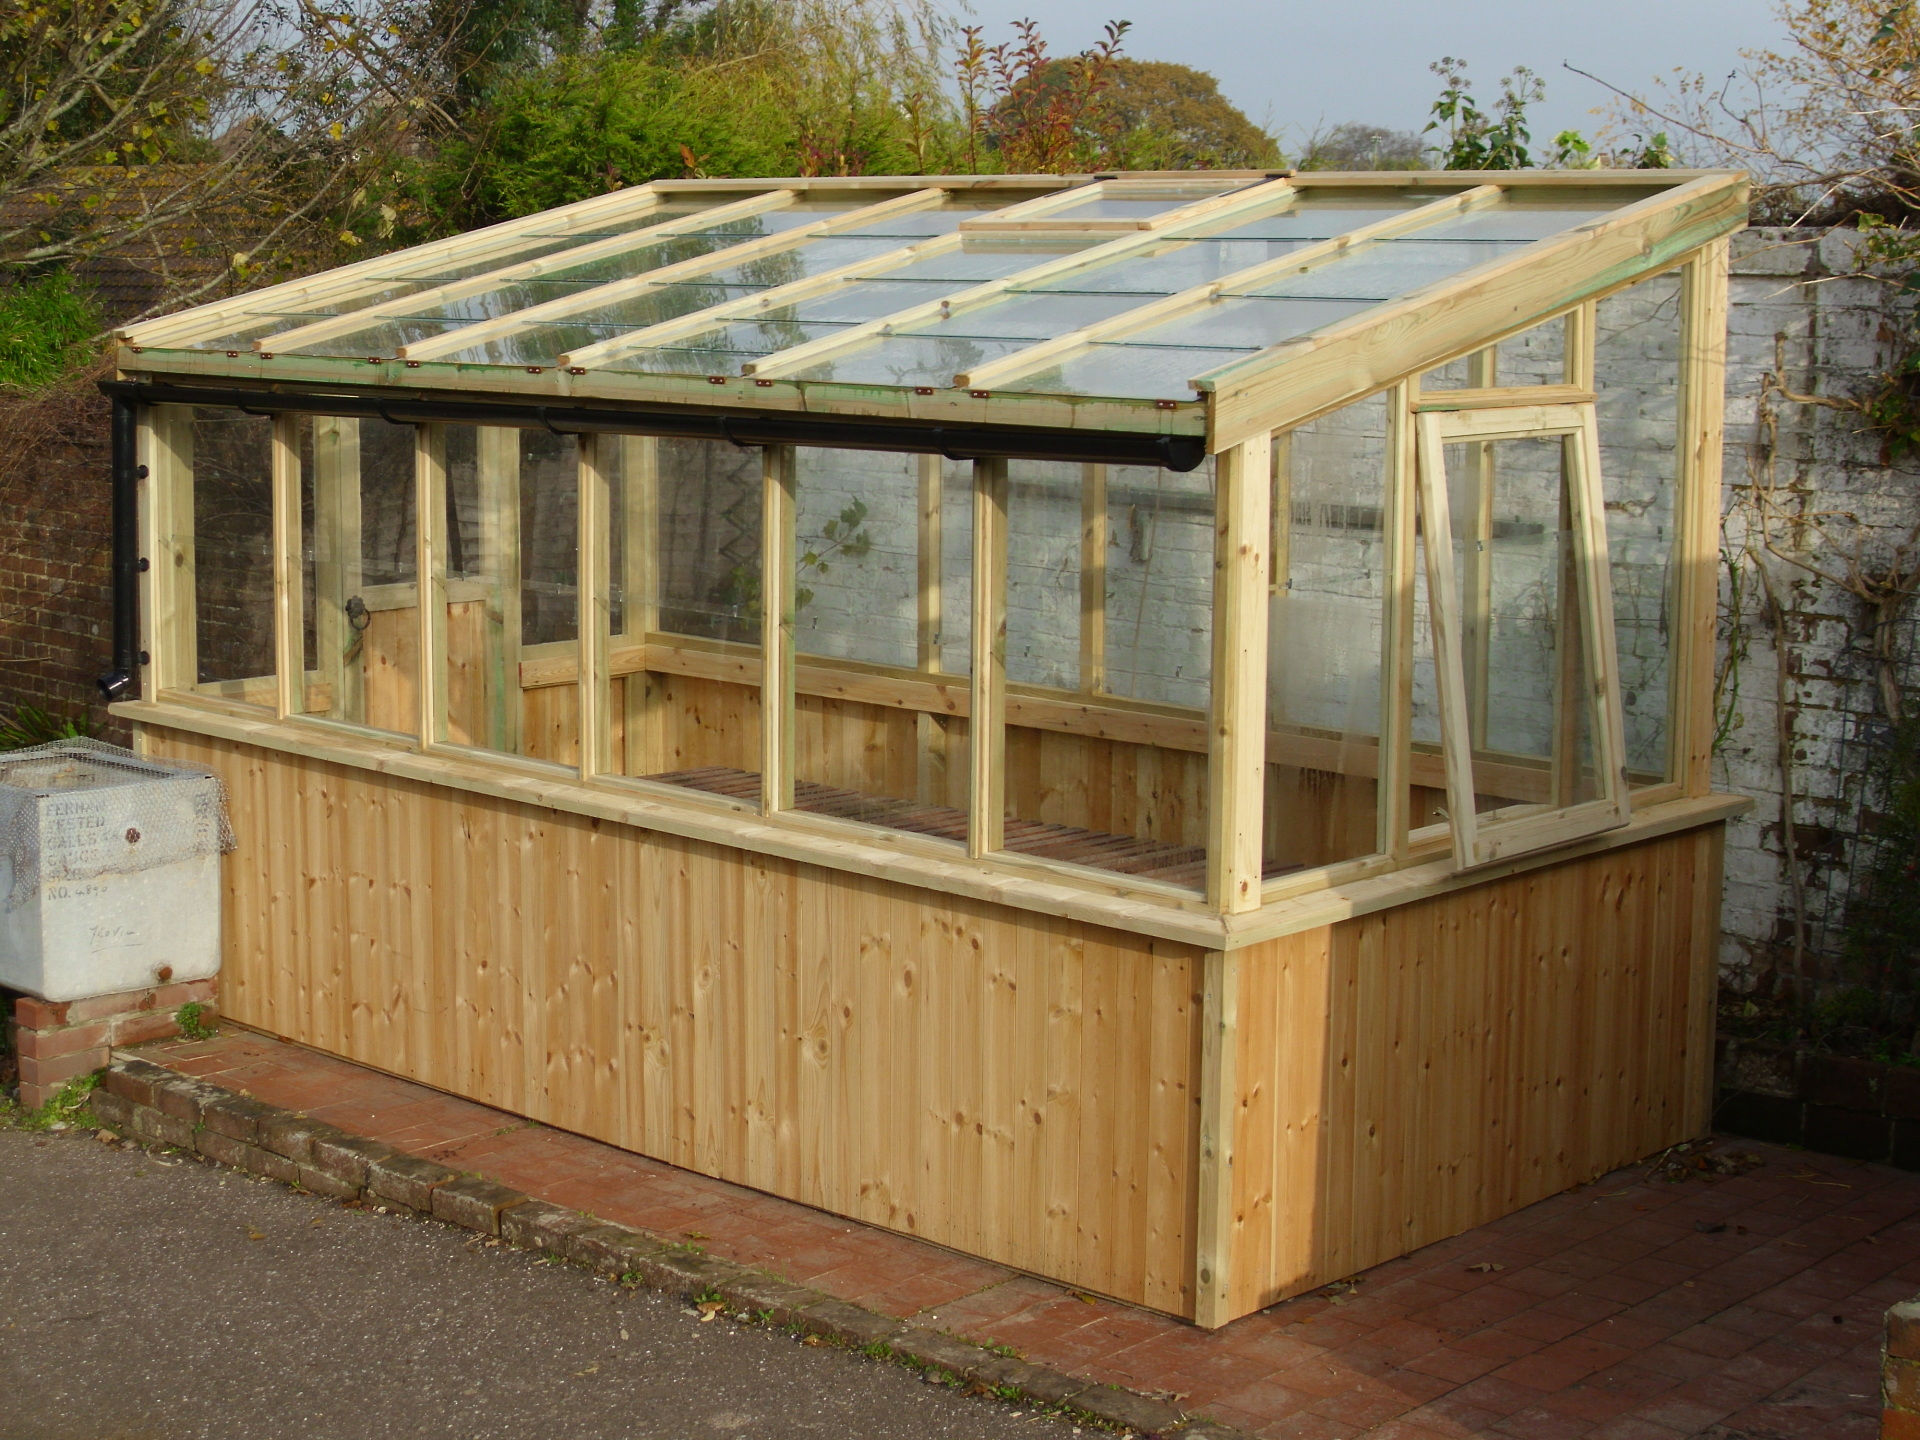 Lean to style green house